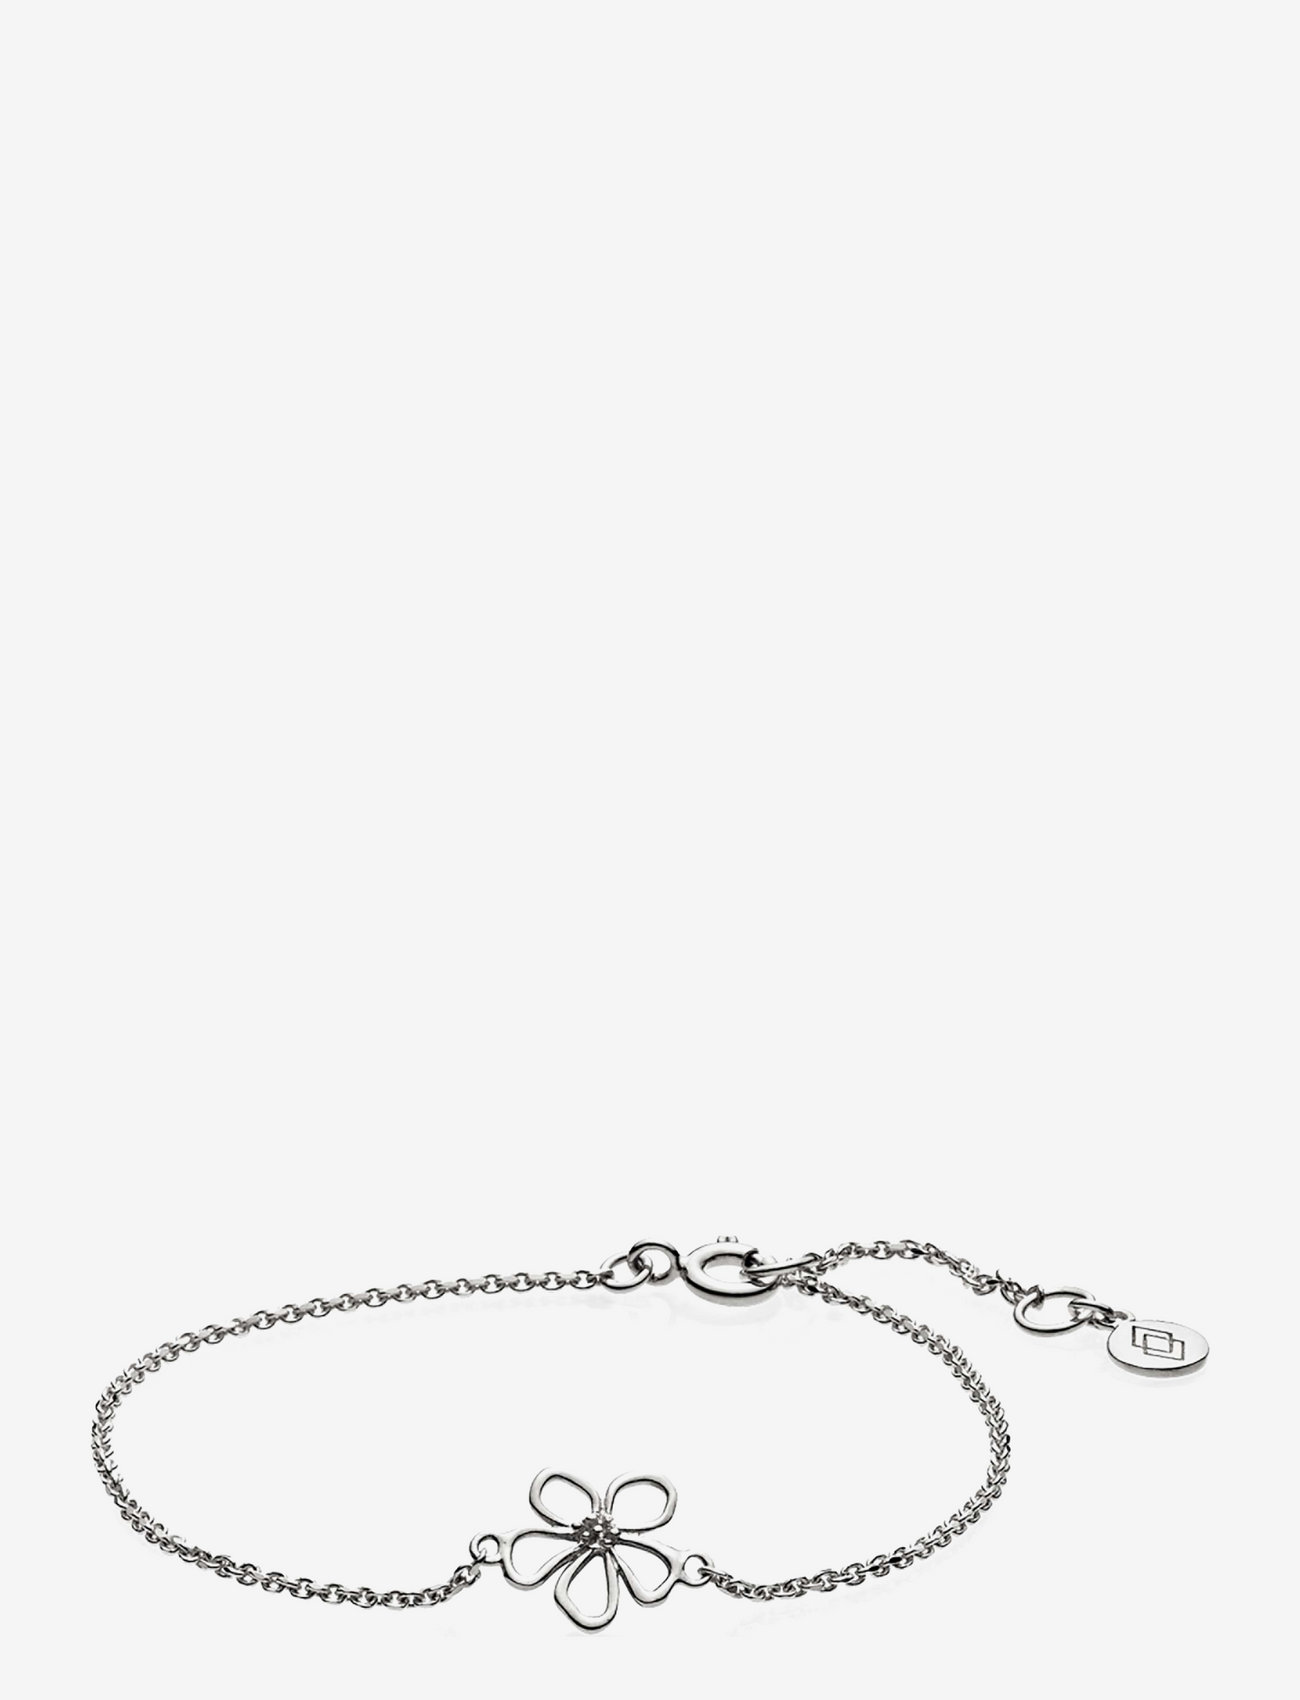 Izabel Camille - Honey - dainty - rhodium plated sterling silver